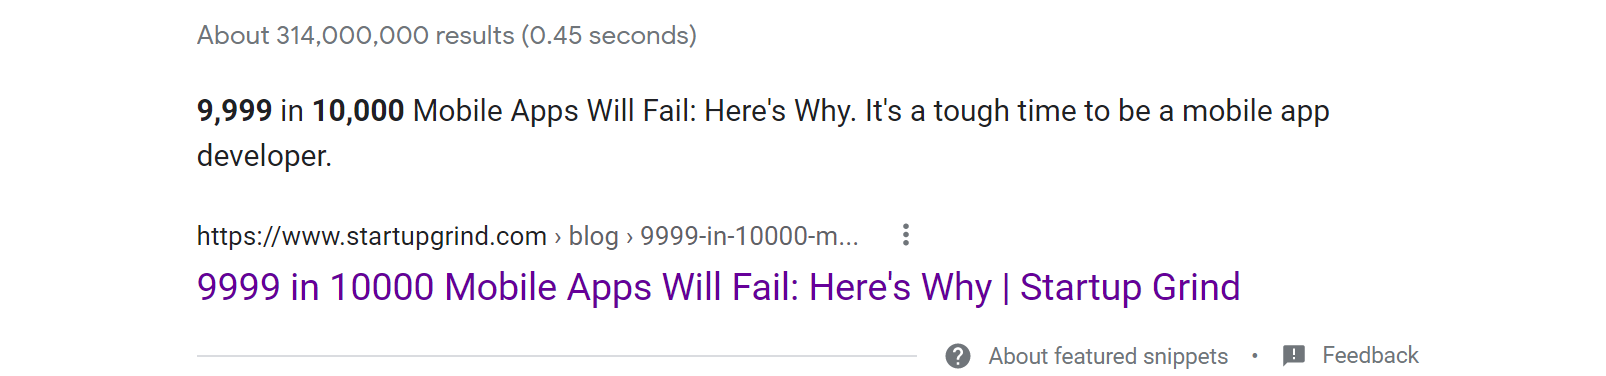 Featured snippet with incorrect information